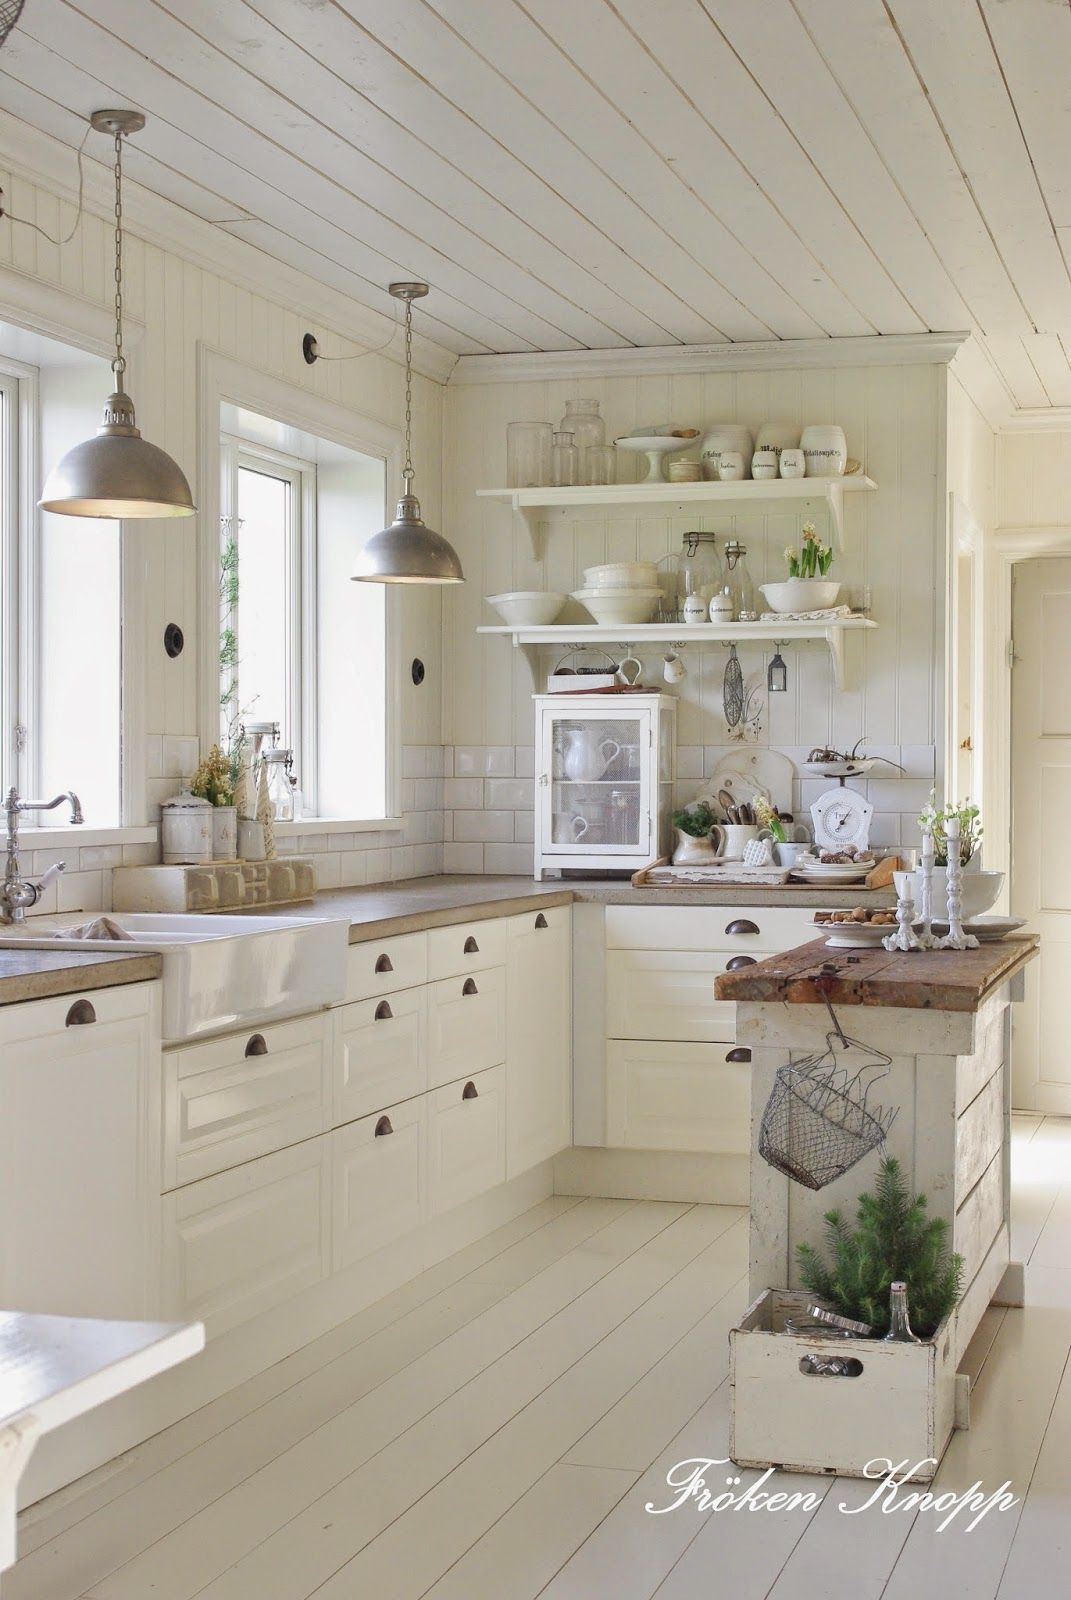 Love this entire kitchen farm house sink open shelving white cabinets lots of natural light and a sweet island with a reclaimed wood top